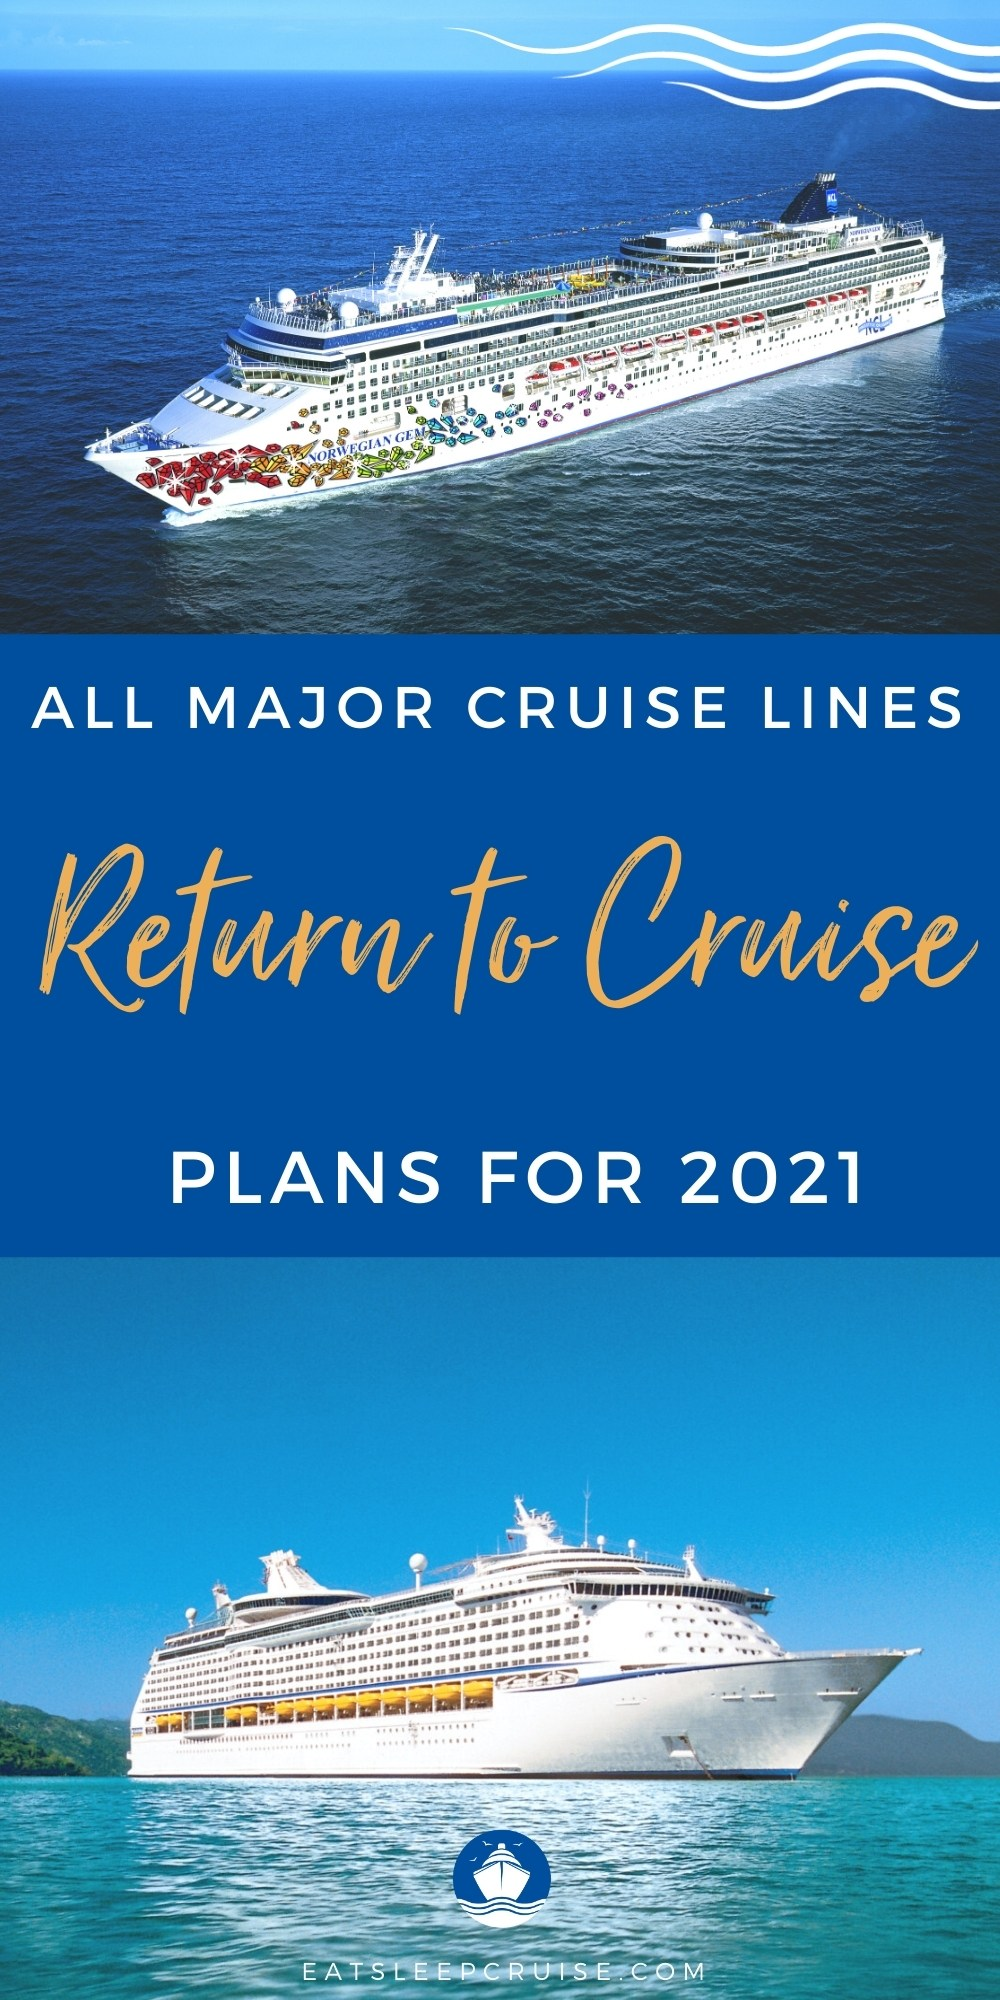 cruise lines' return to cruise plans for 2021